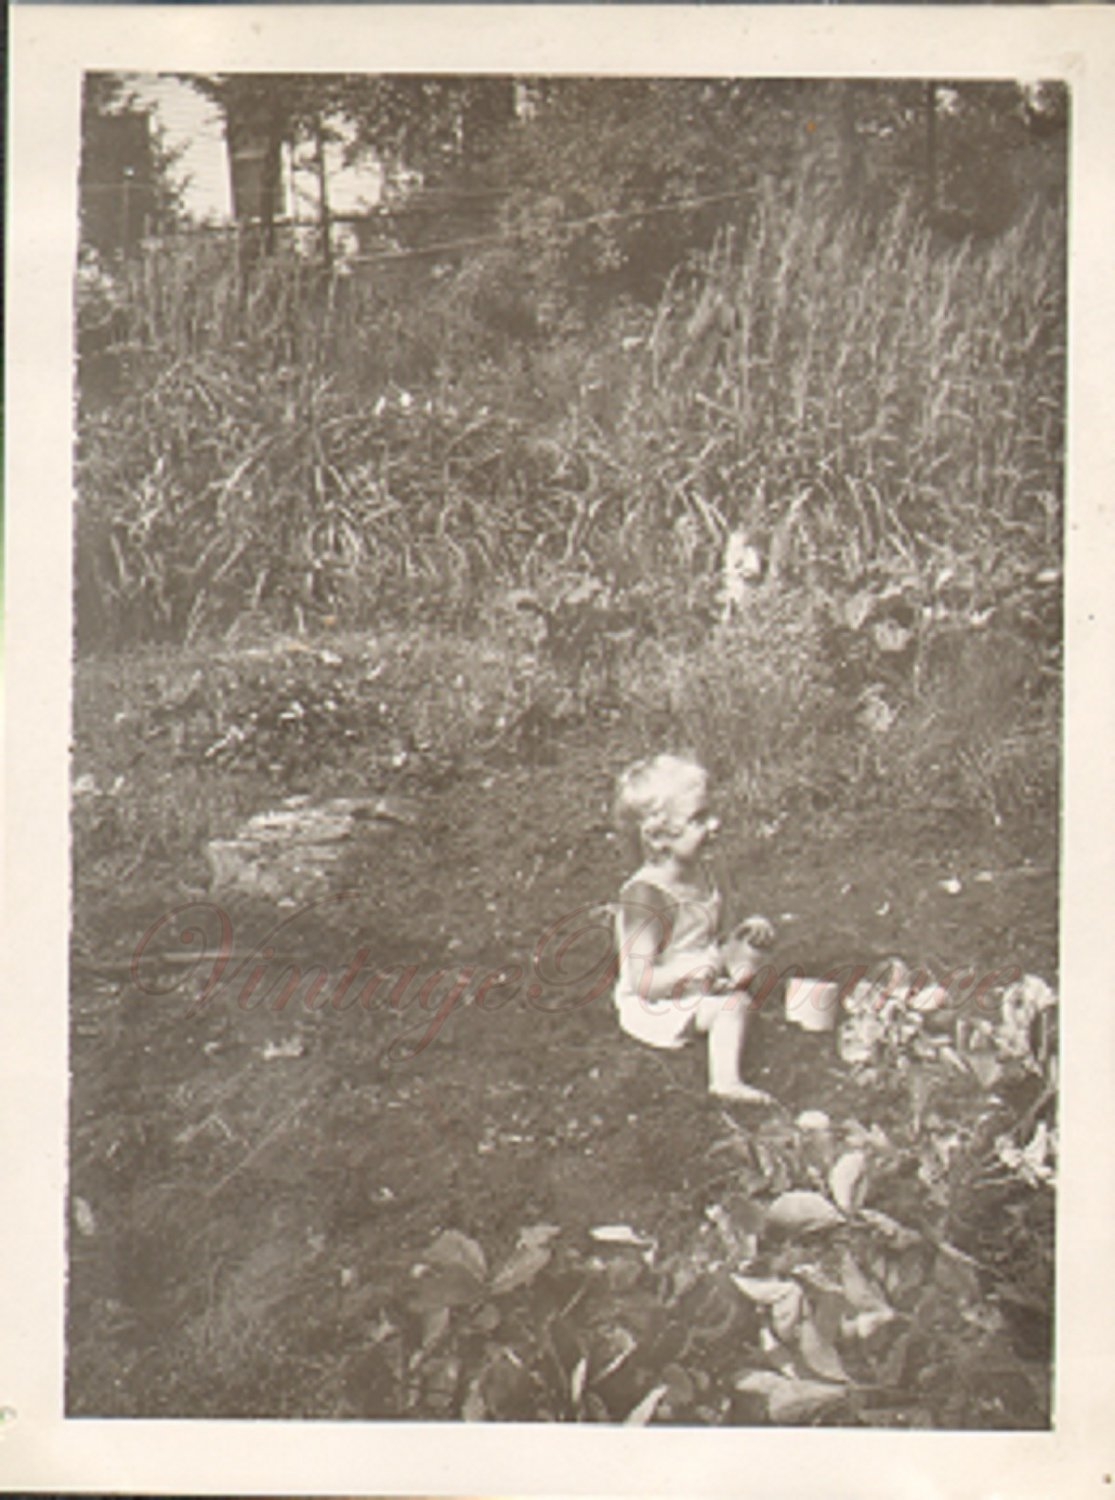 D02804 Young Child Plays in the Dirt Vintage Photo 1940s